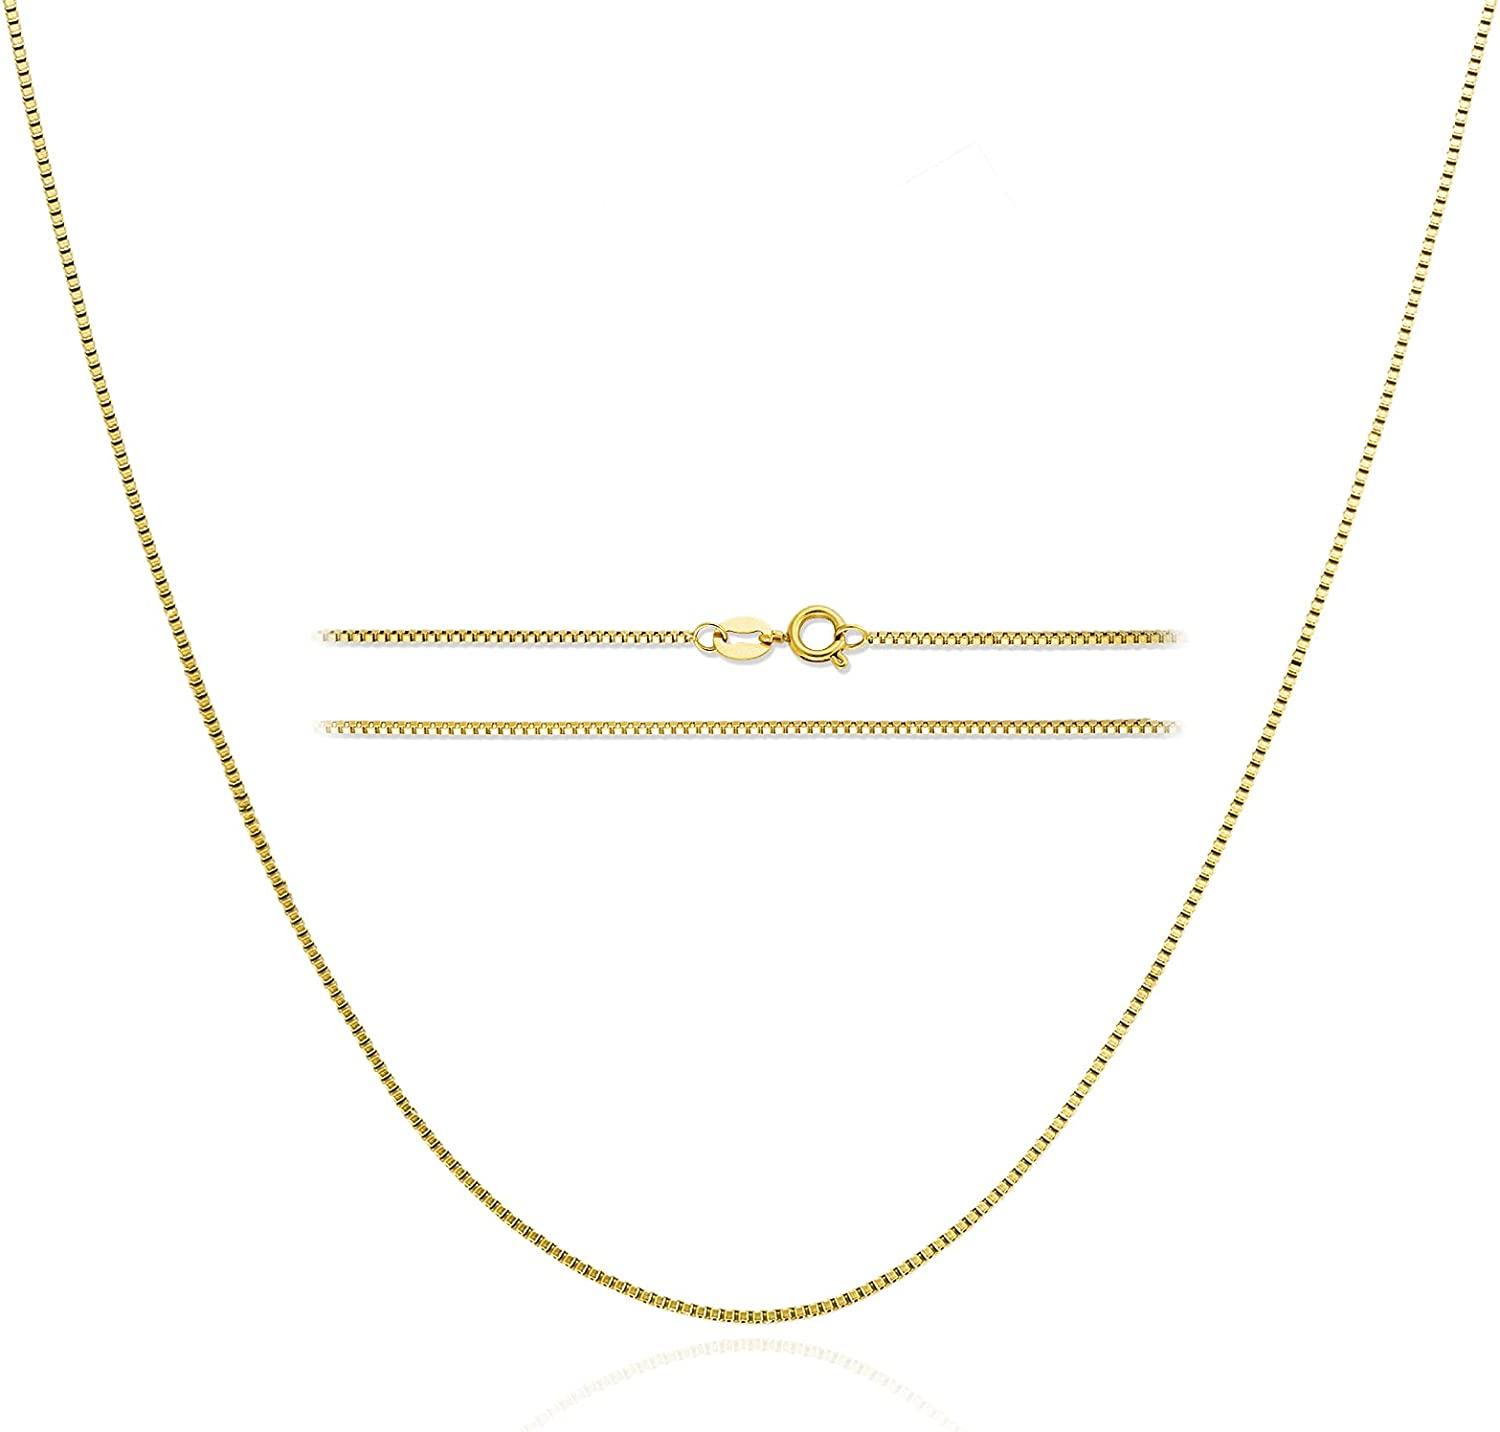 18k Gold Plated Box Chain: Stainless Max 88% OFF Dainty Link Free shipping / New Steel Thin Tren